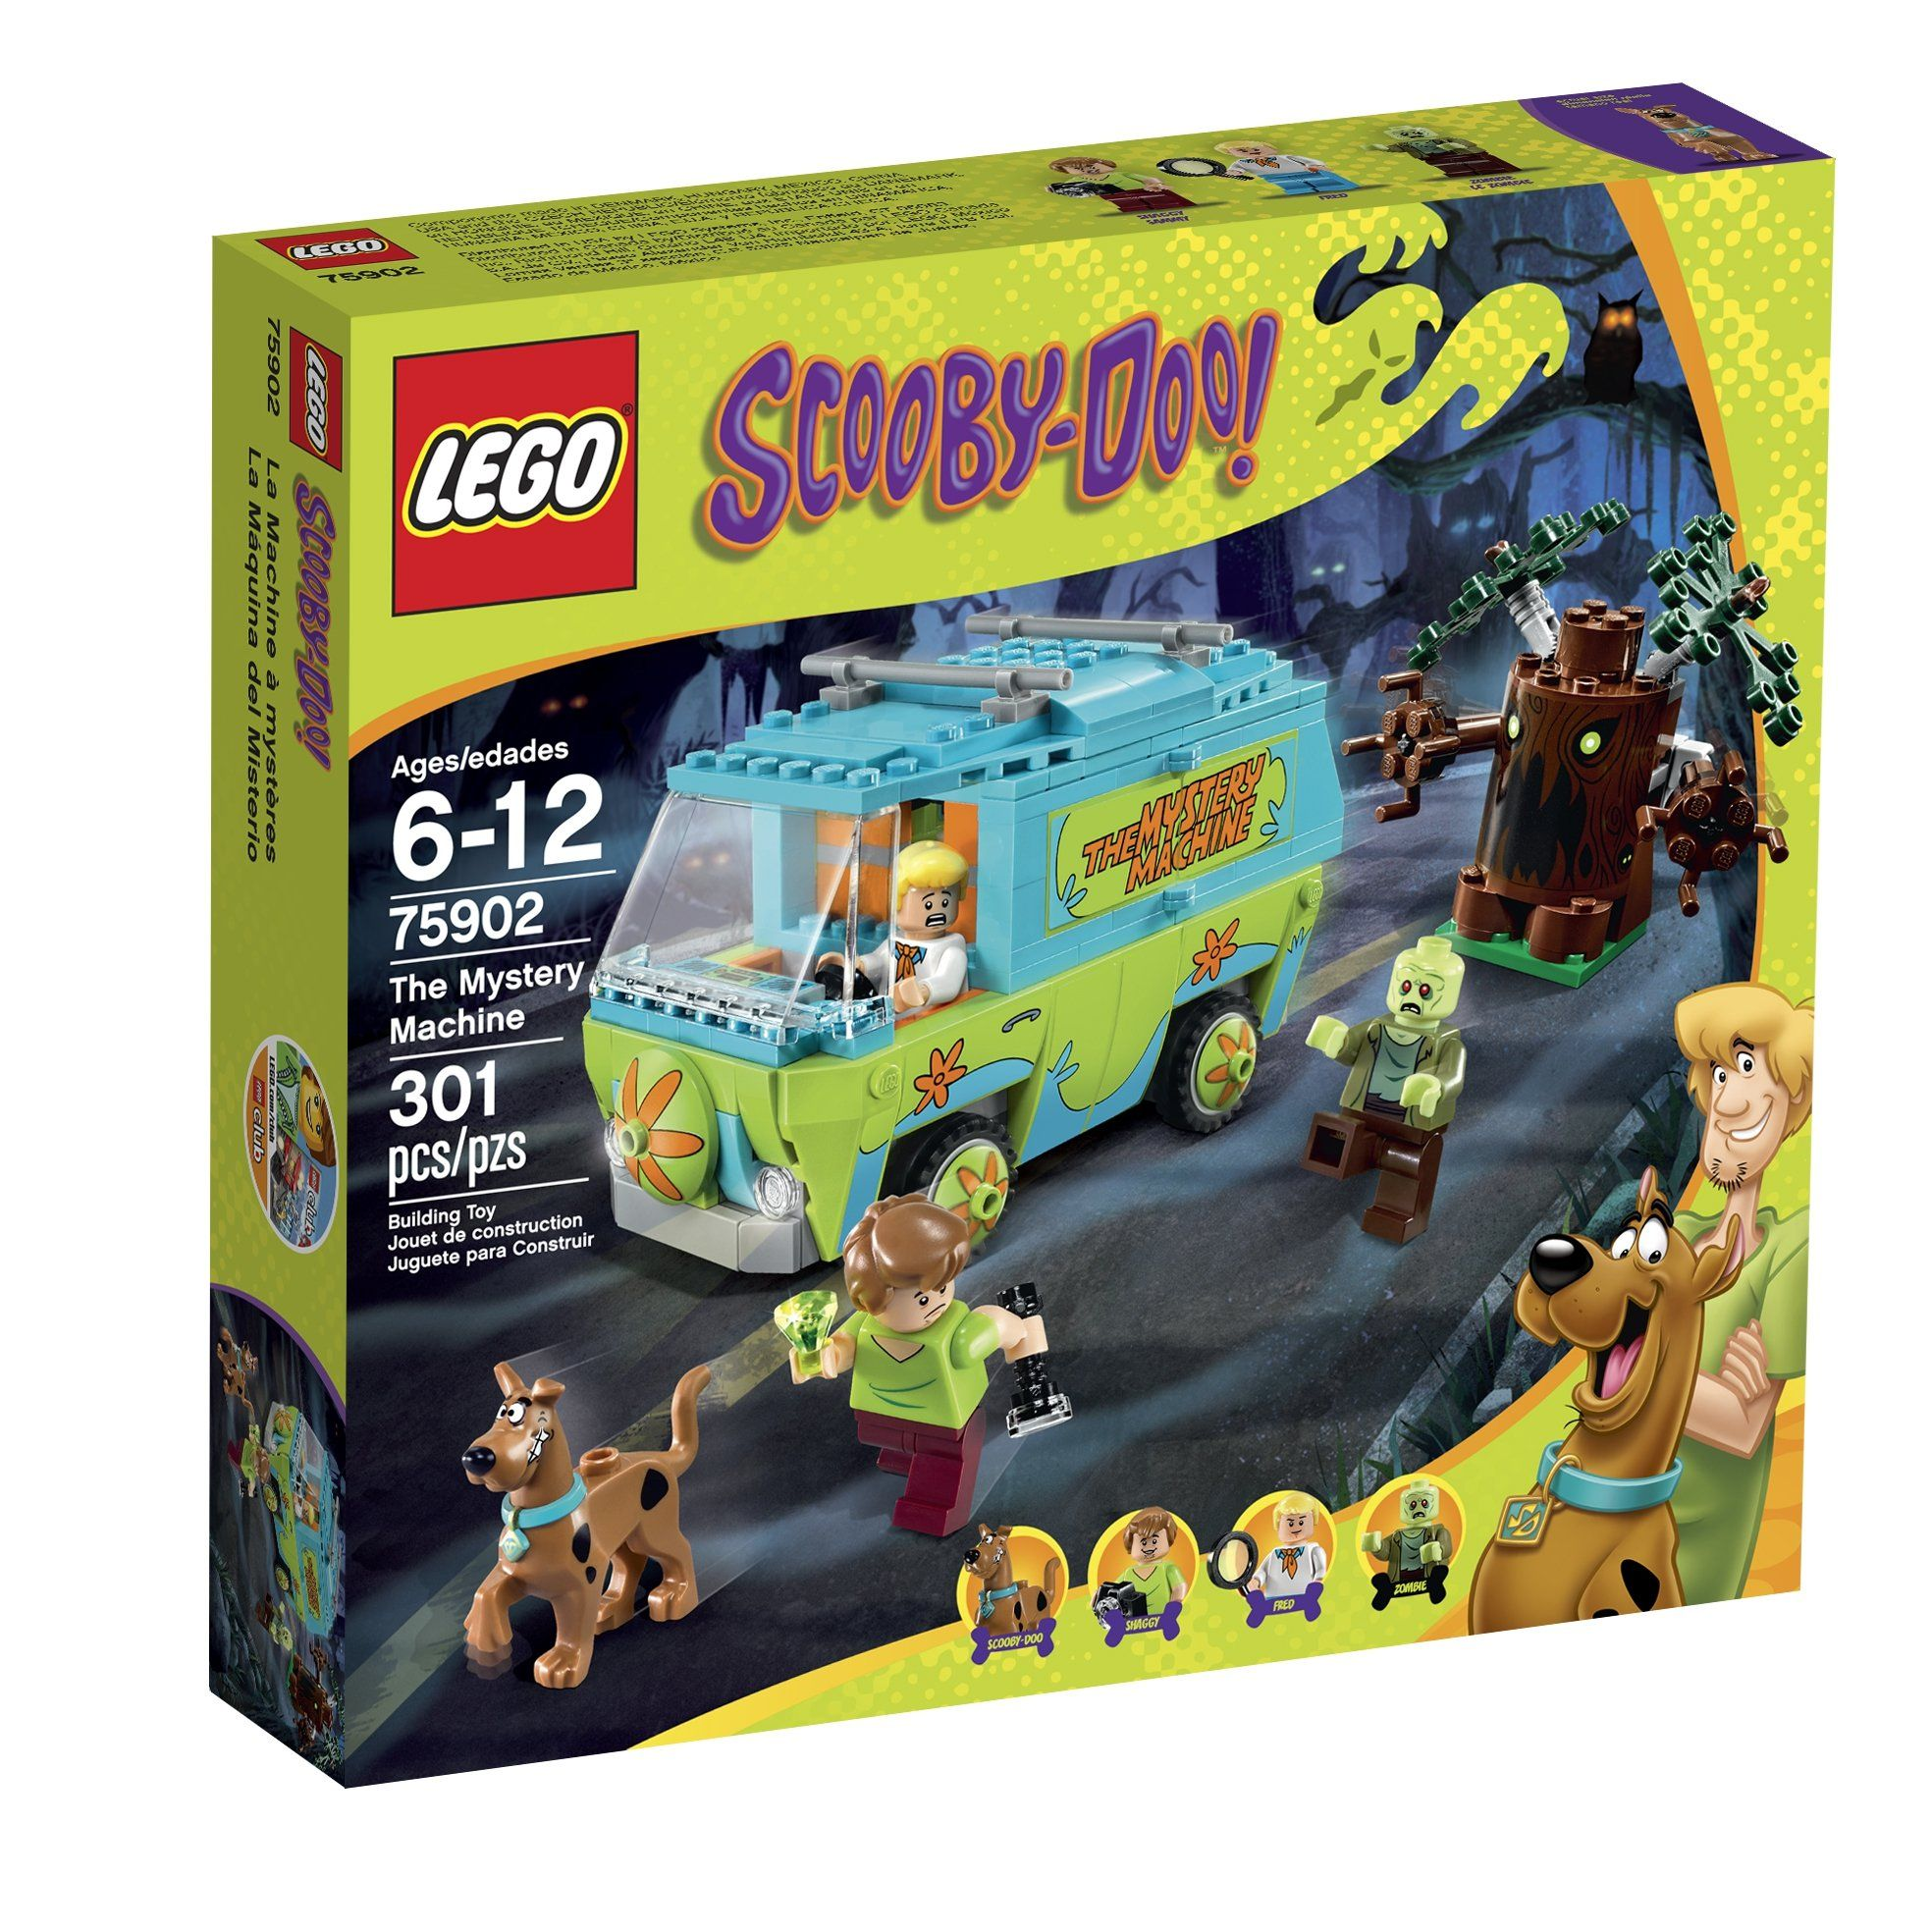 Lego car toys  LEGO ScoobyDoo  the Mystery Machine Building Kit  LEGO